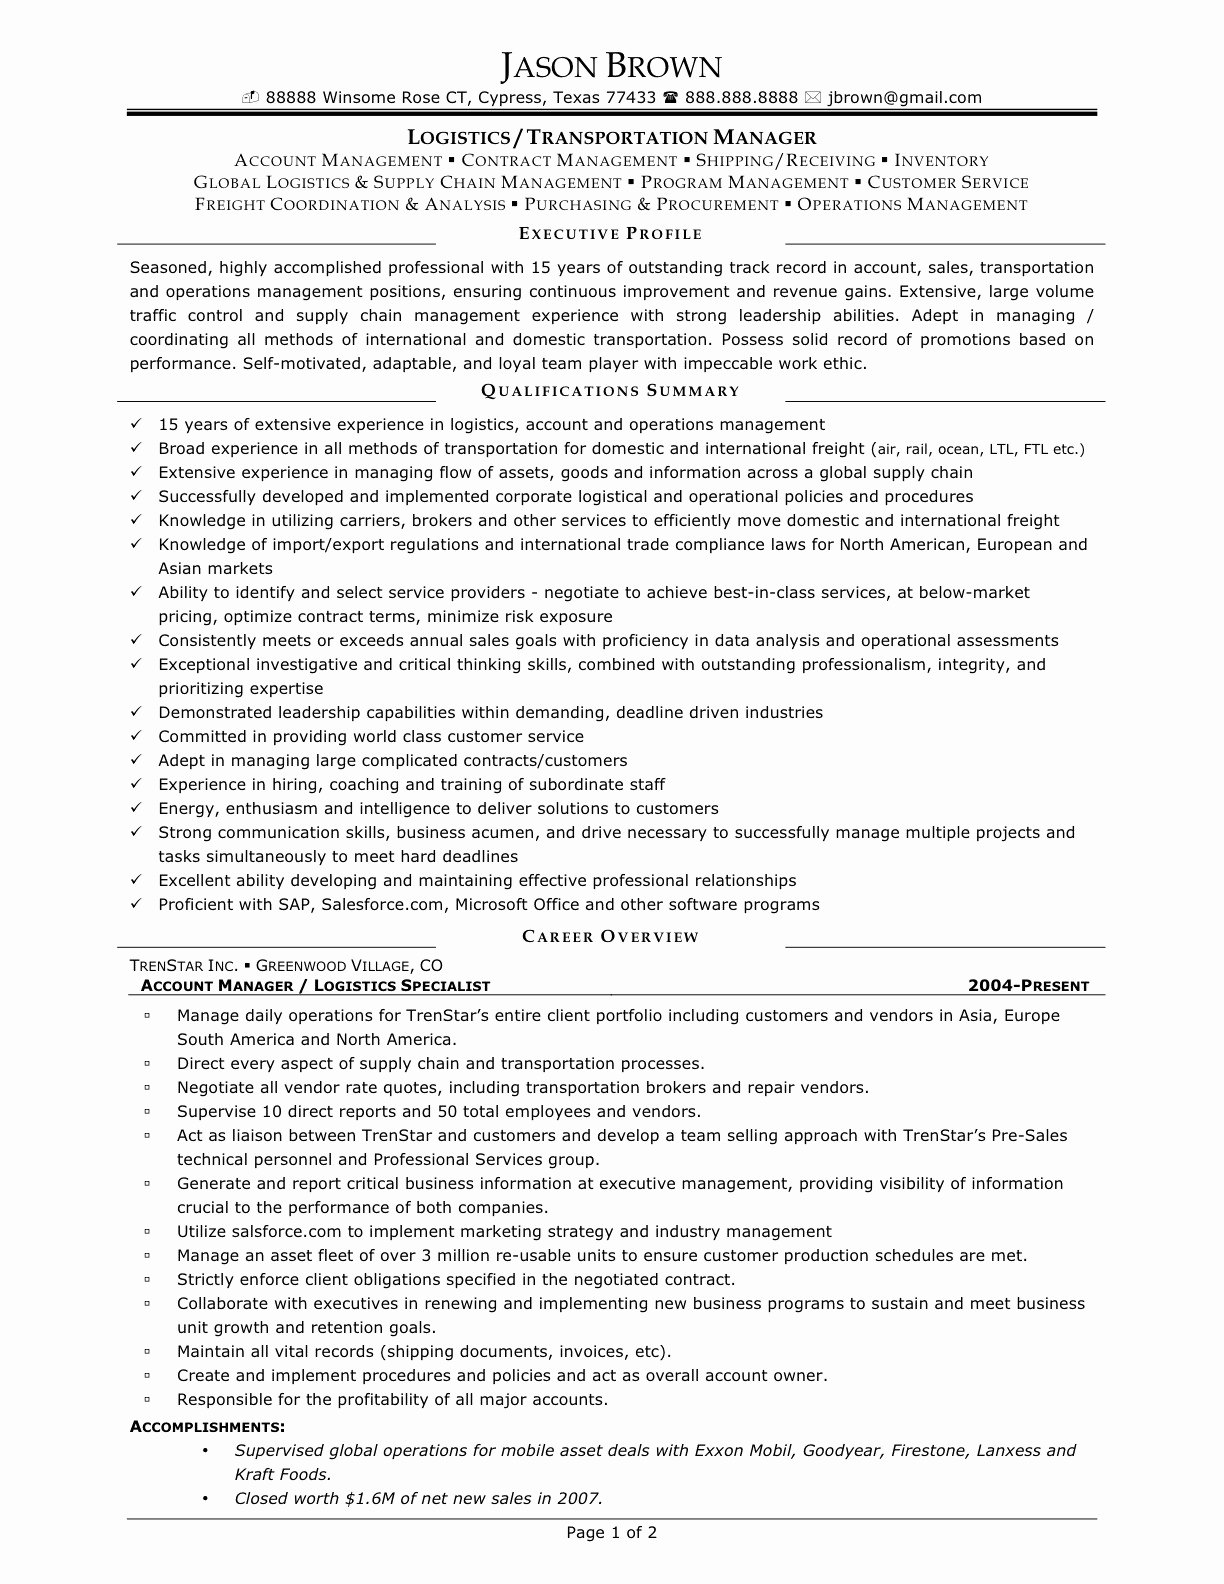 Transportation Resume Cover Letter Sample Transportation